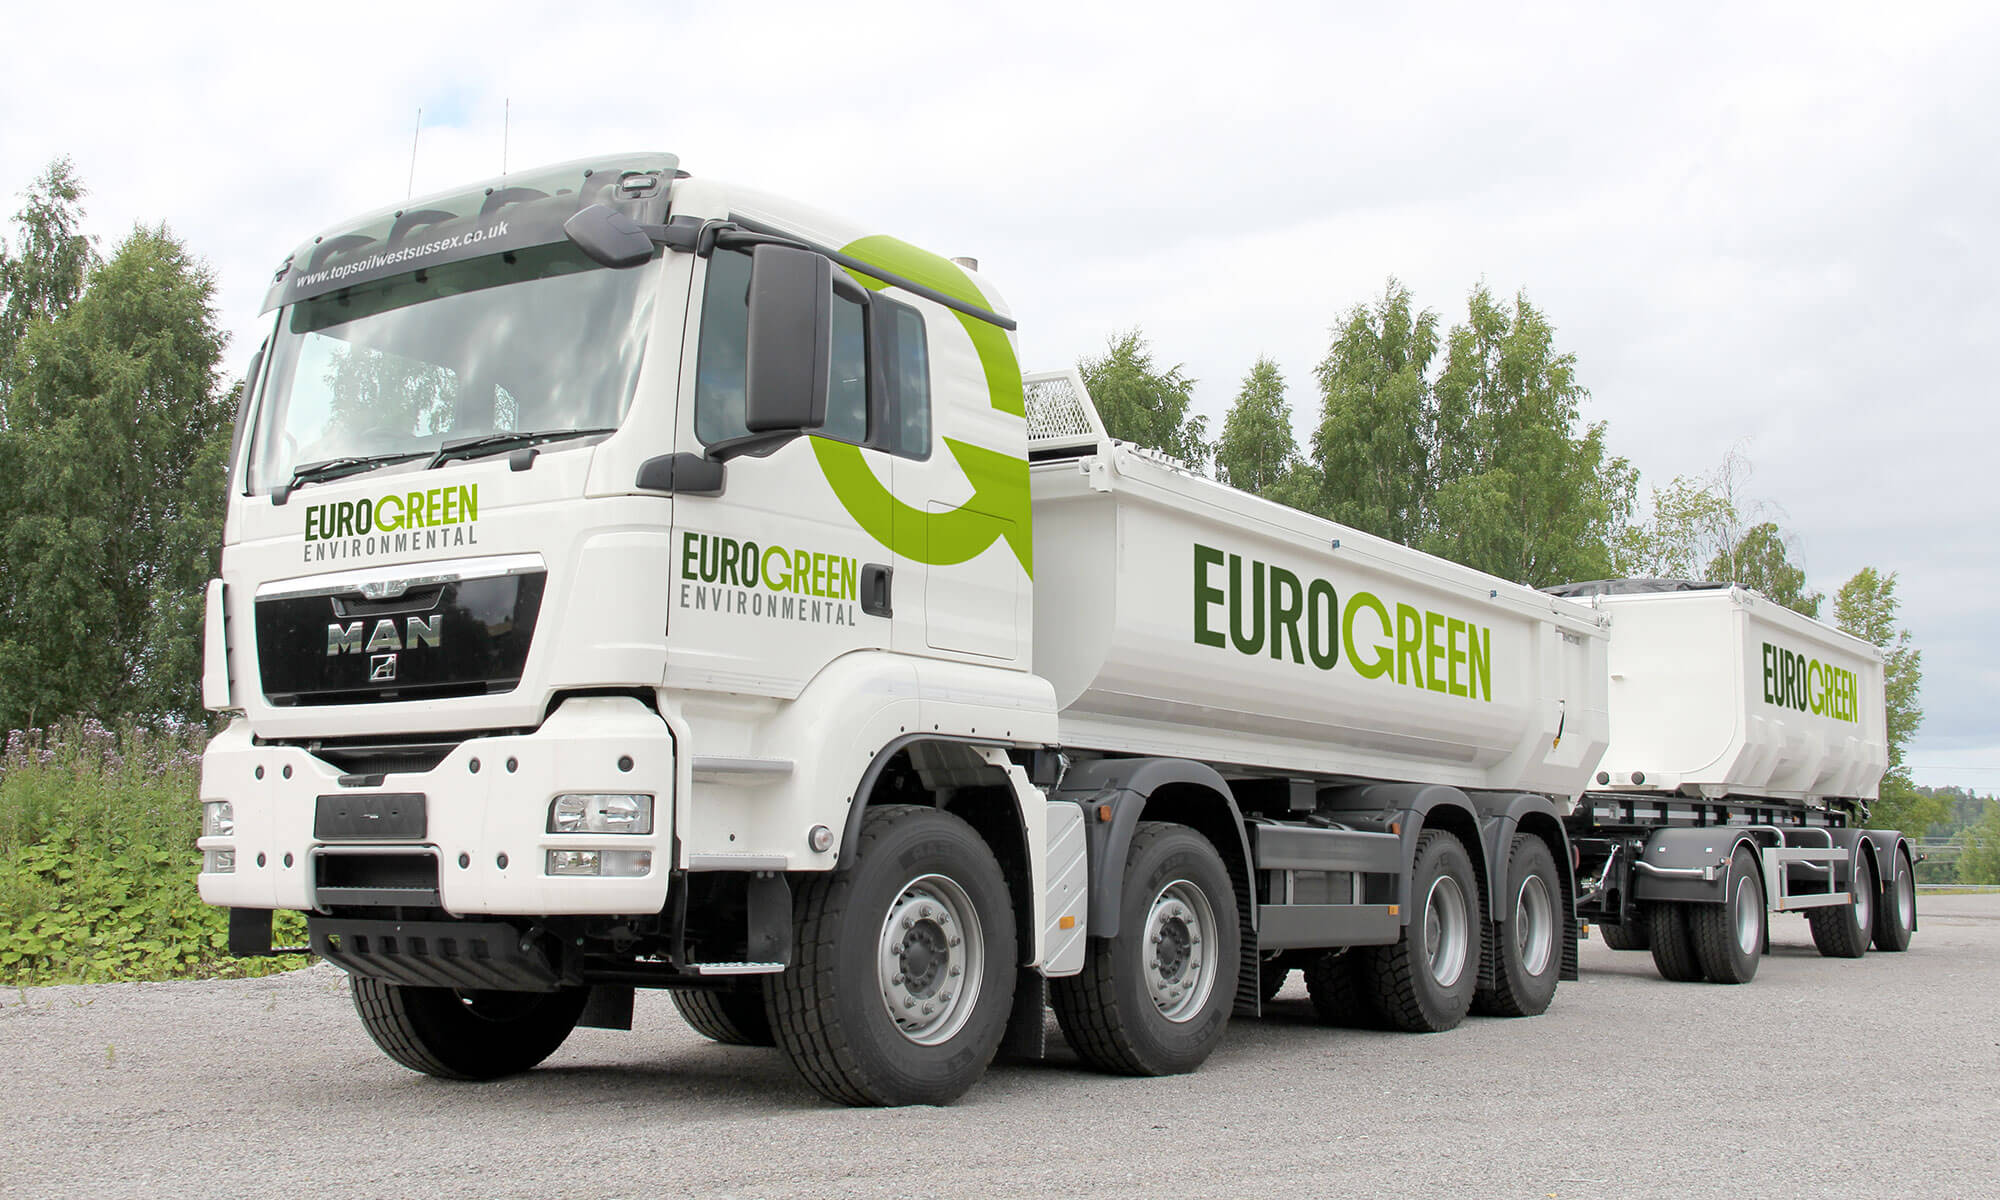 Eurogreen Vehicle Sign Writing Concept